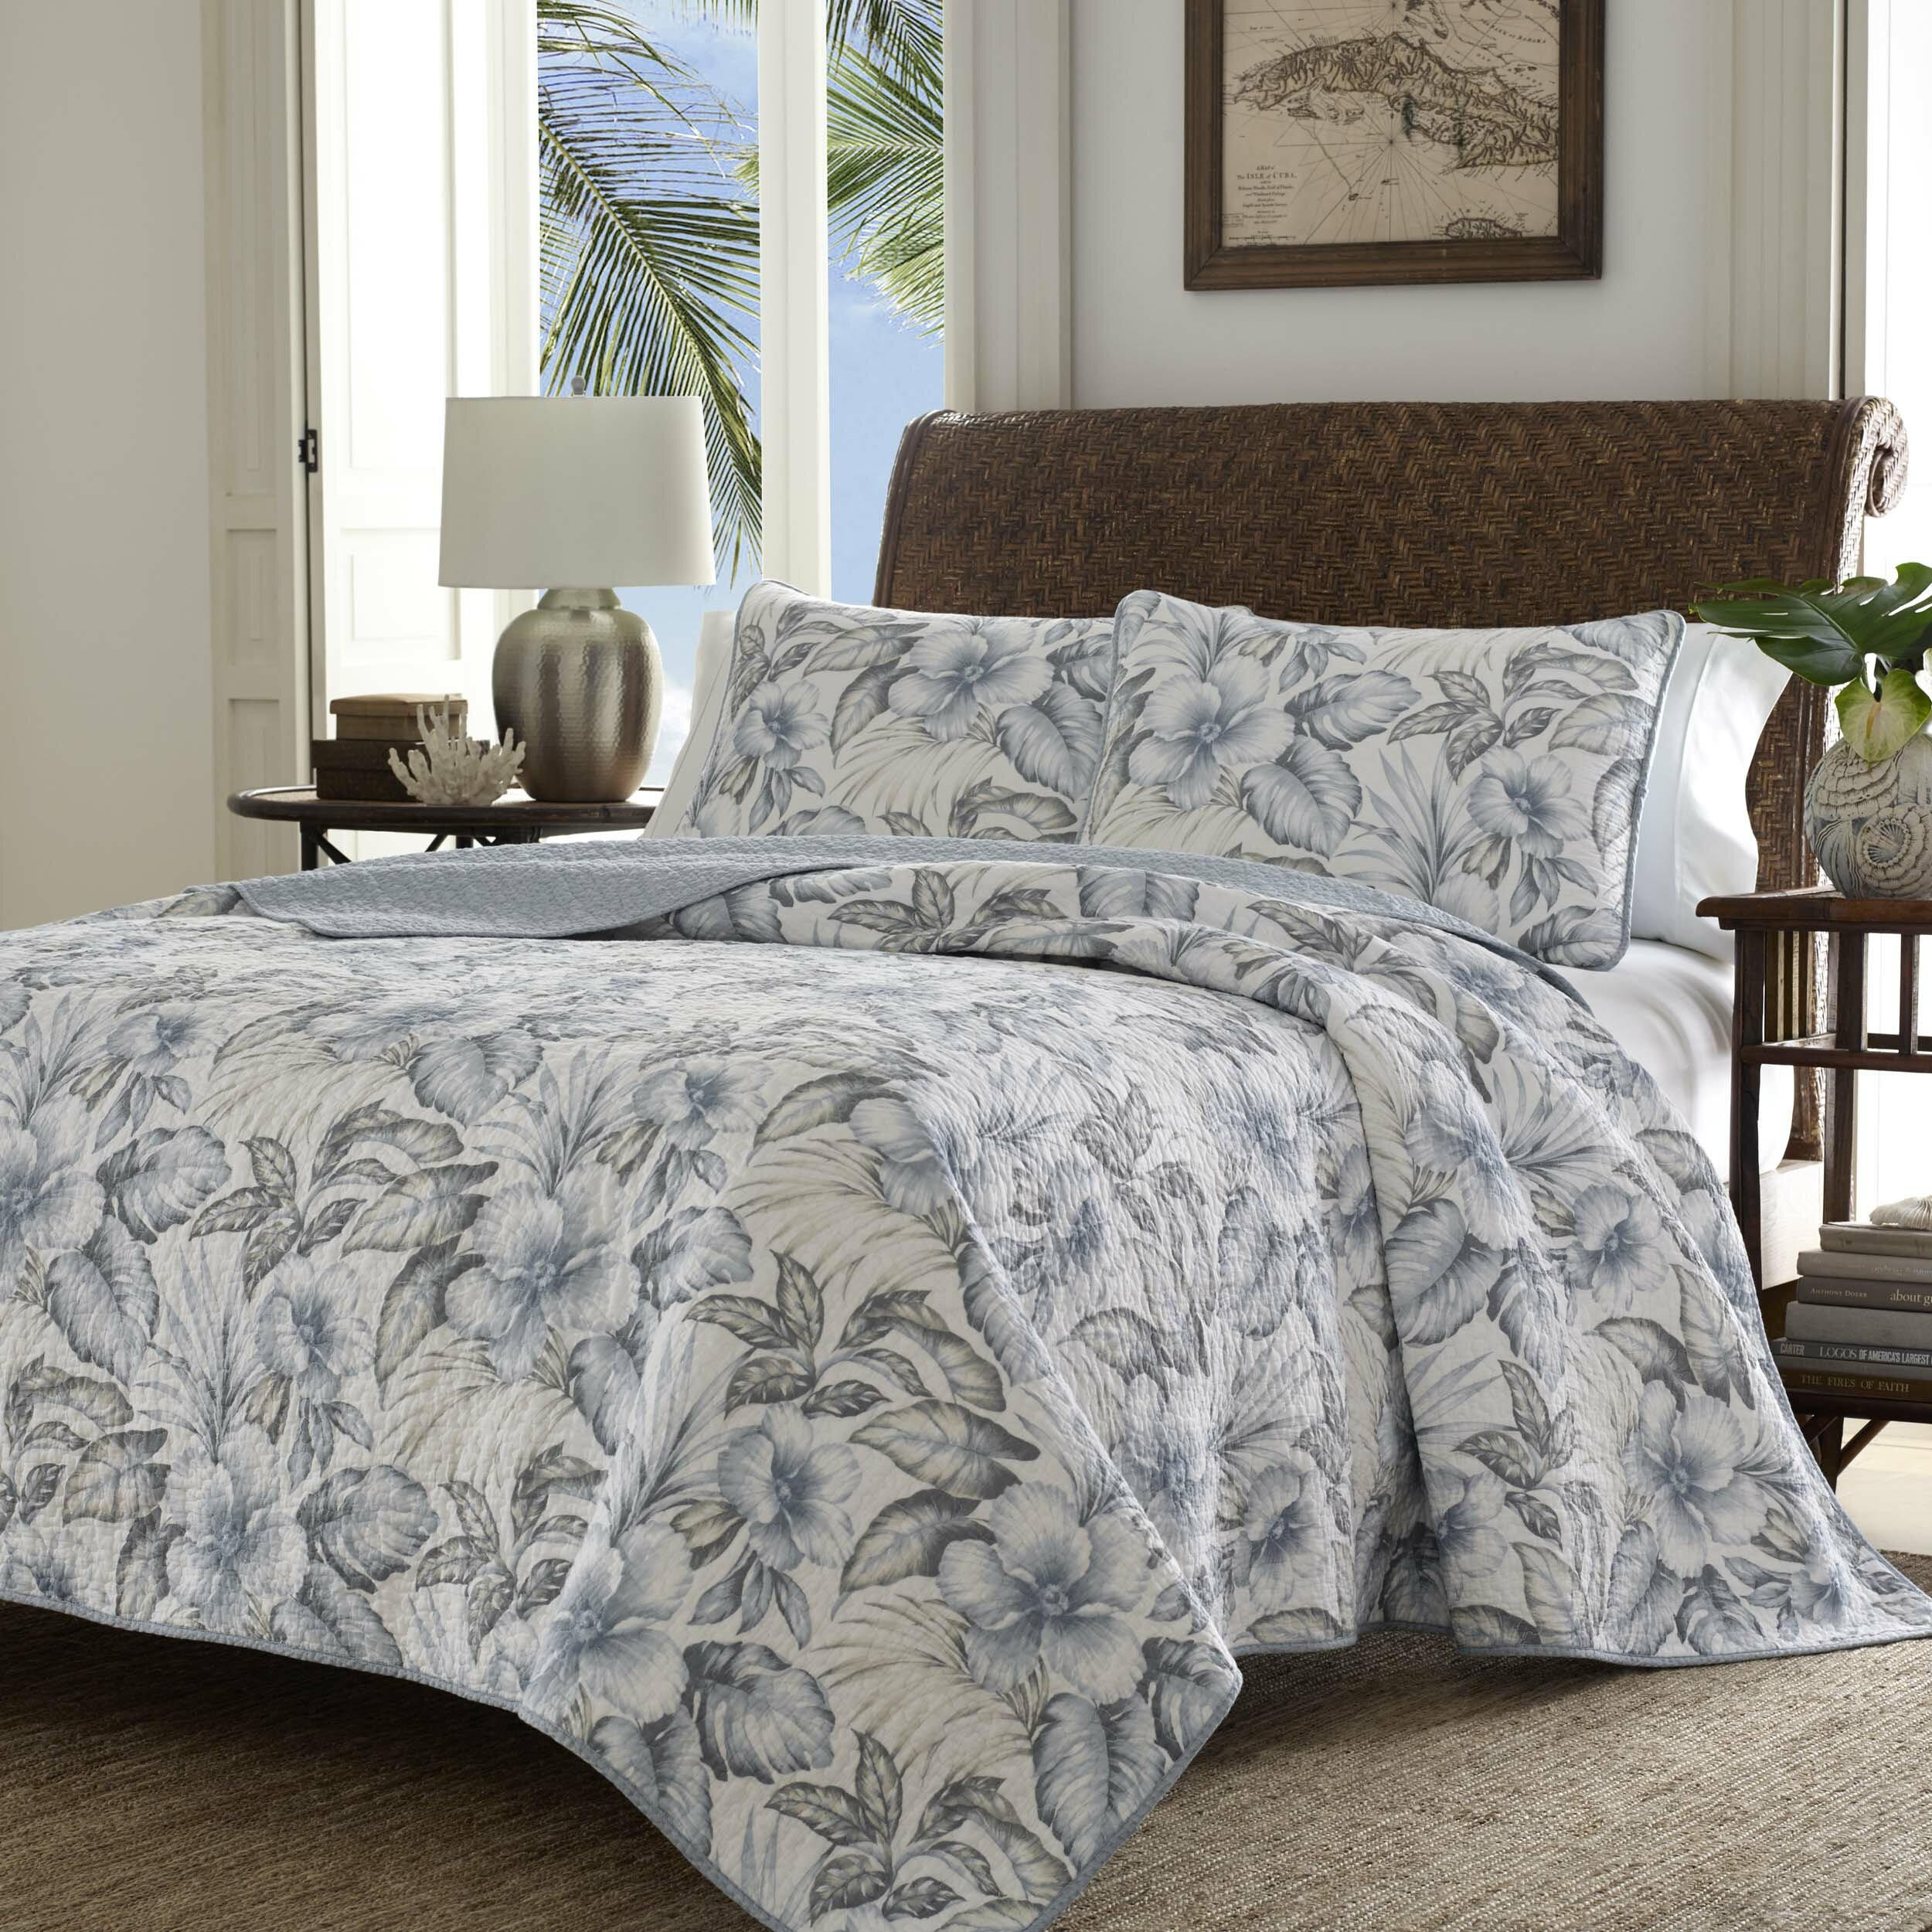 shipping king comforter sandy free overstock bedding bahama tommy product set bath coast today